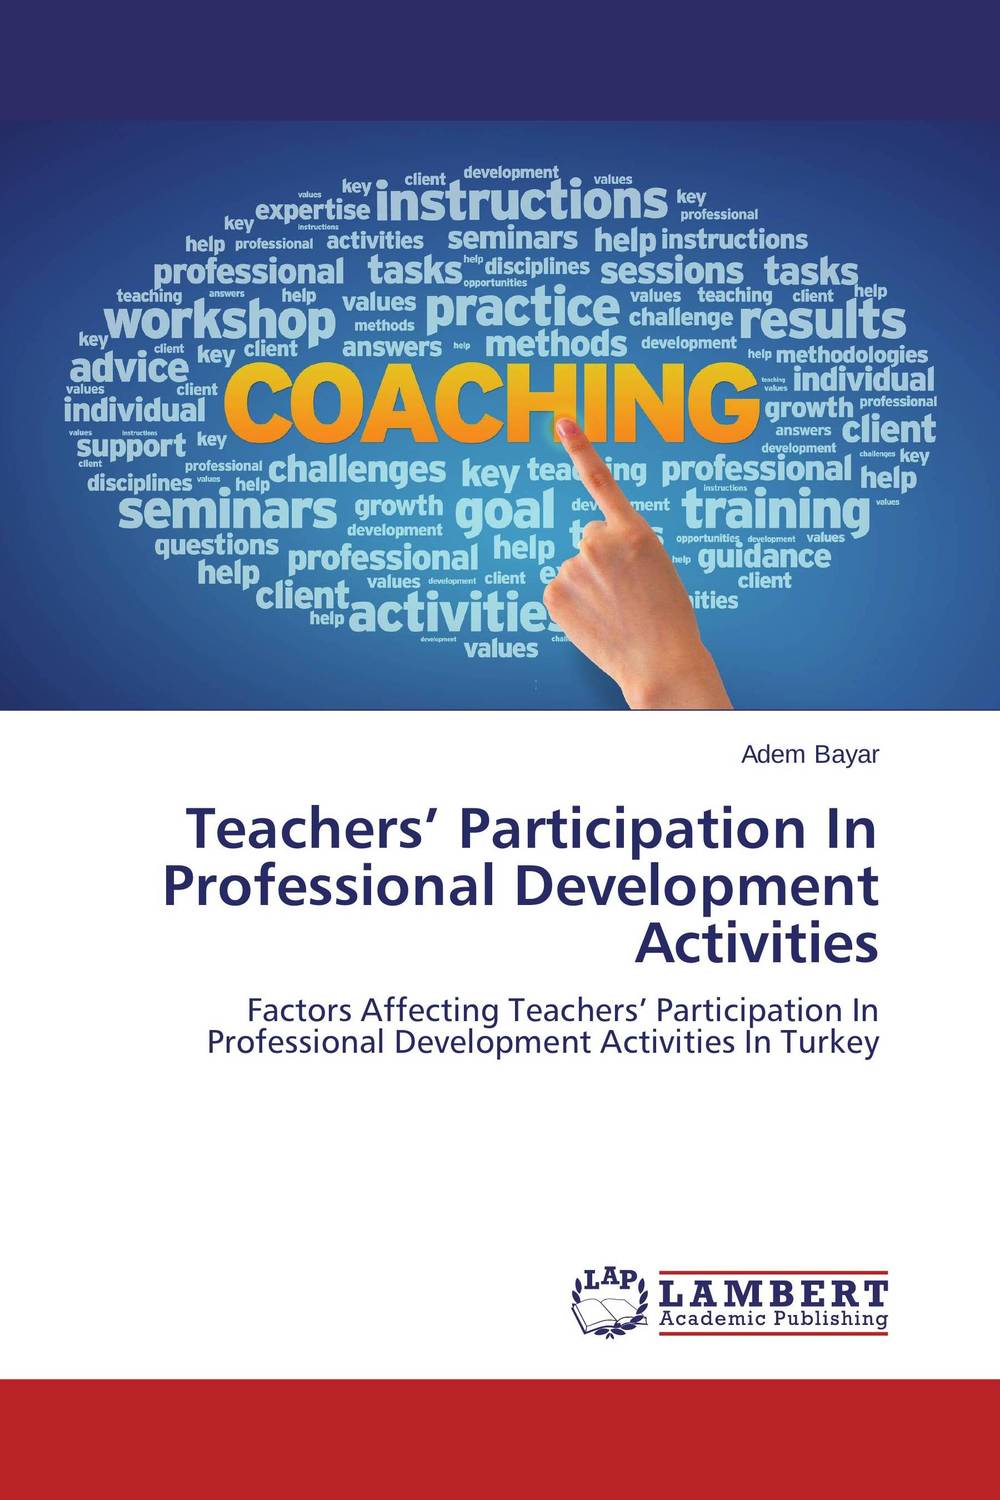 Teachers' Participation In Professional Development Activities